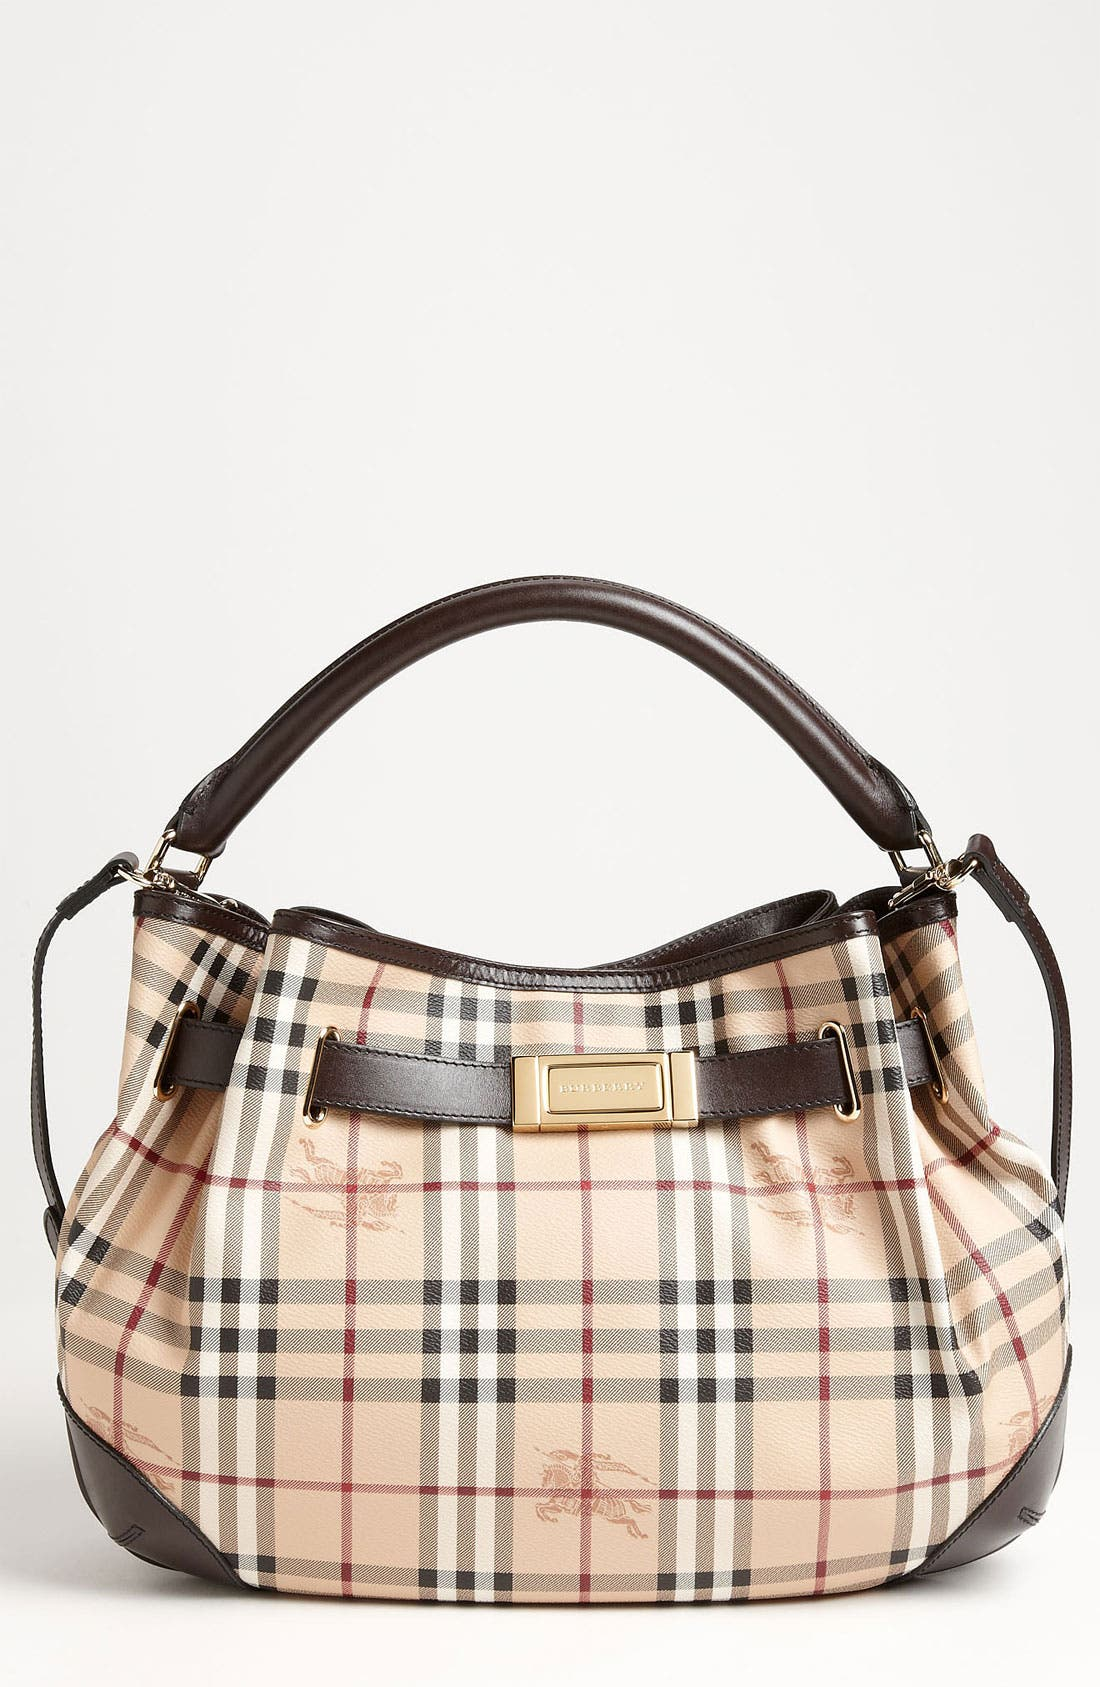 Main Image - Burberry 'Haymarket Check' Hobo